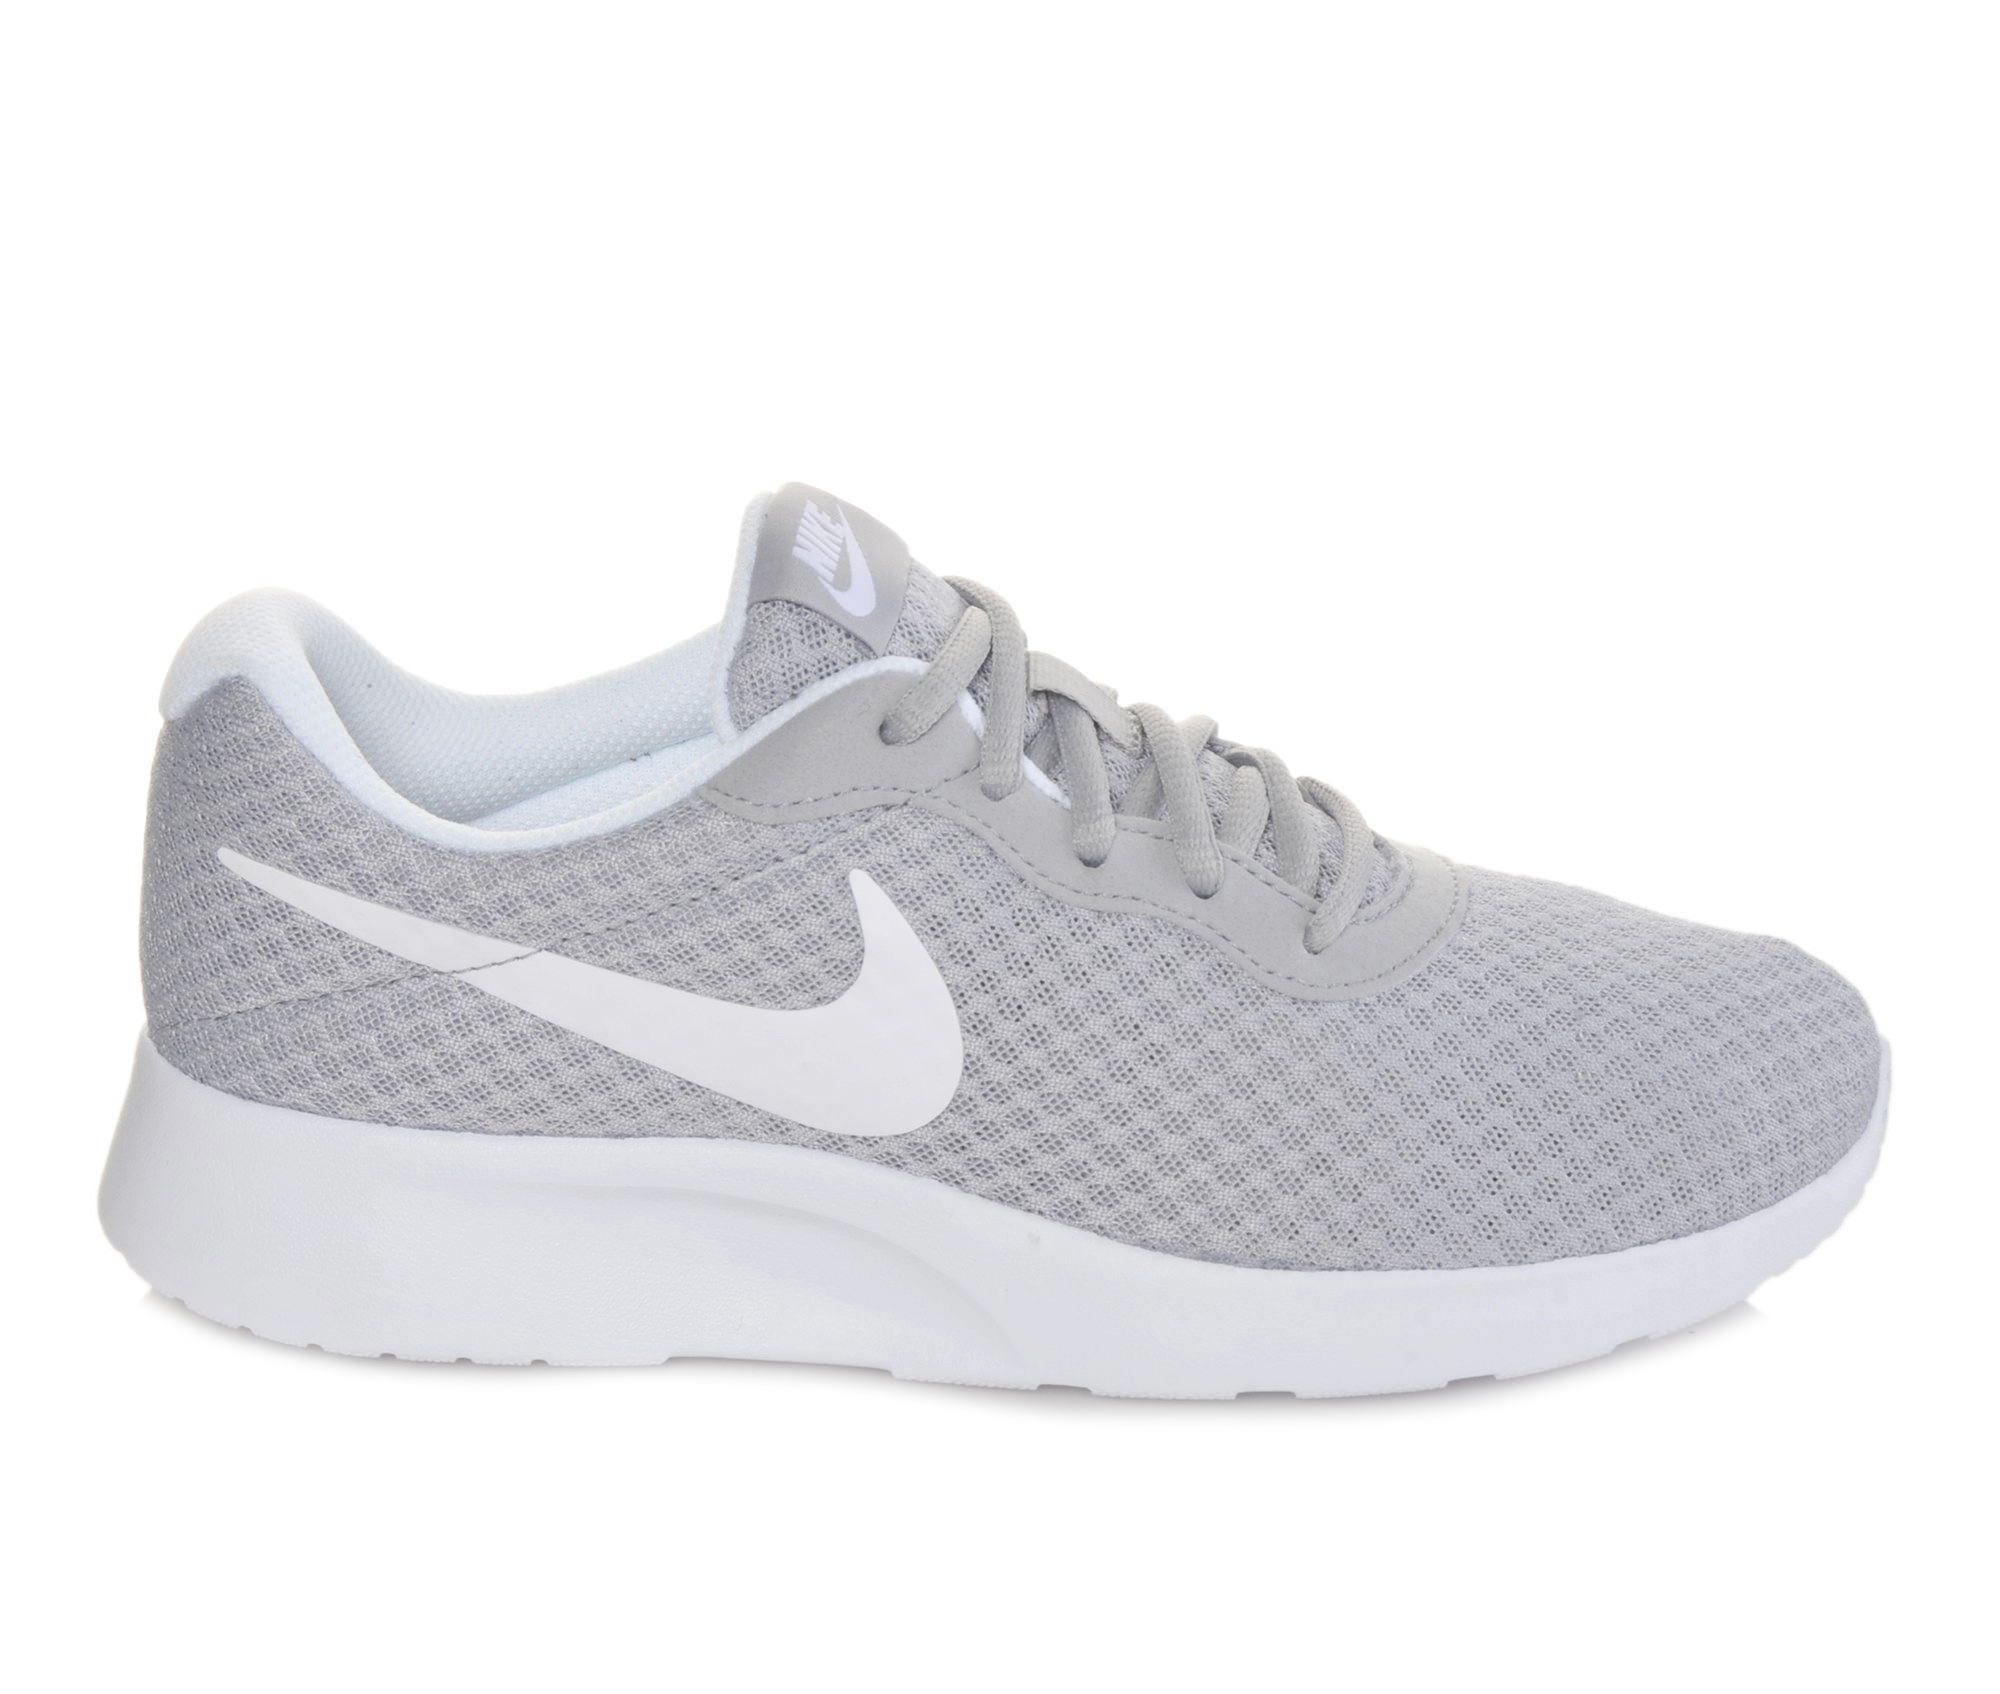 Women's Nike Tanjun Sneakers (Grey - Size 10.5) 1535041